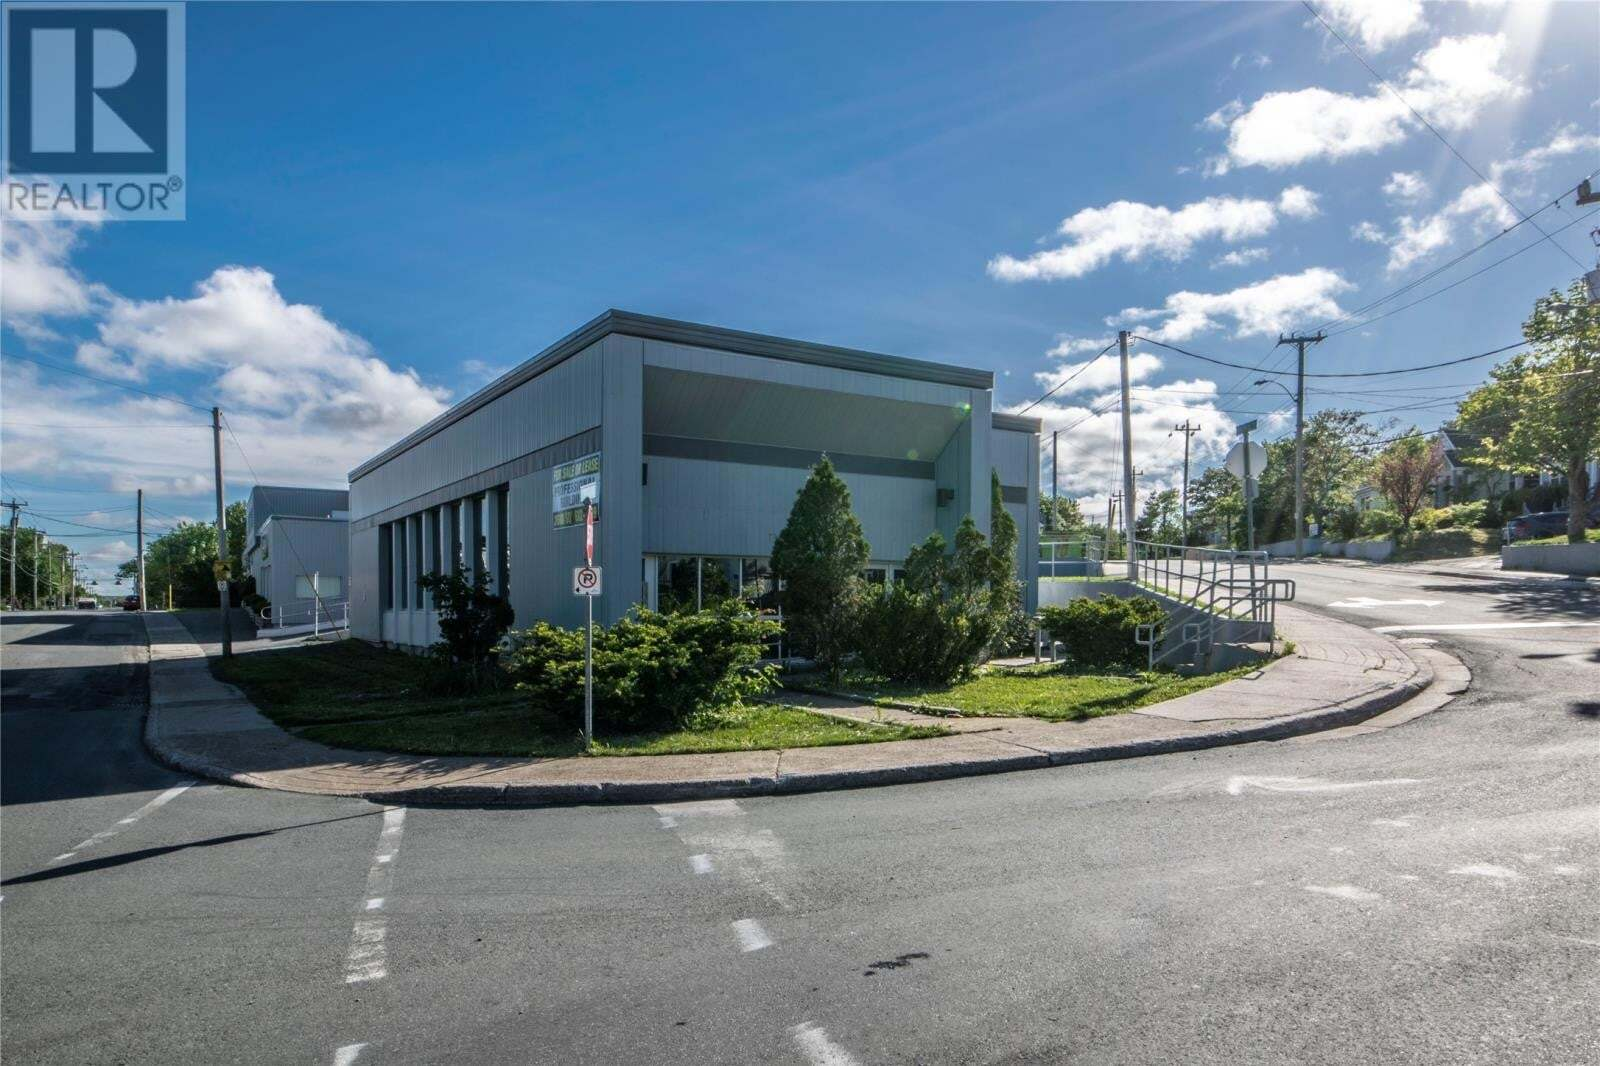 Commercial property for sale at 2 Cornwall Ave St. John's Newfoundland - MLS: 1216585